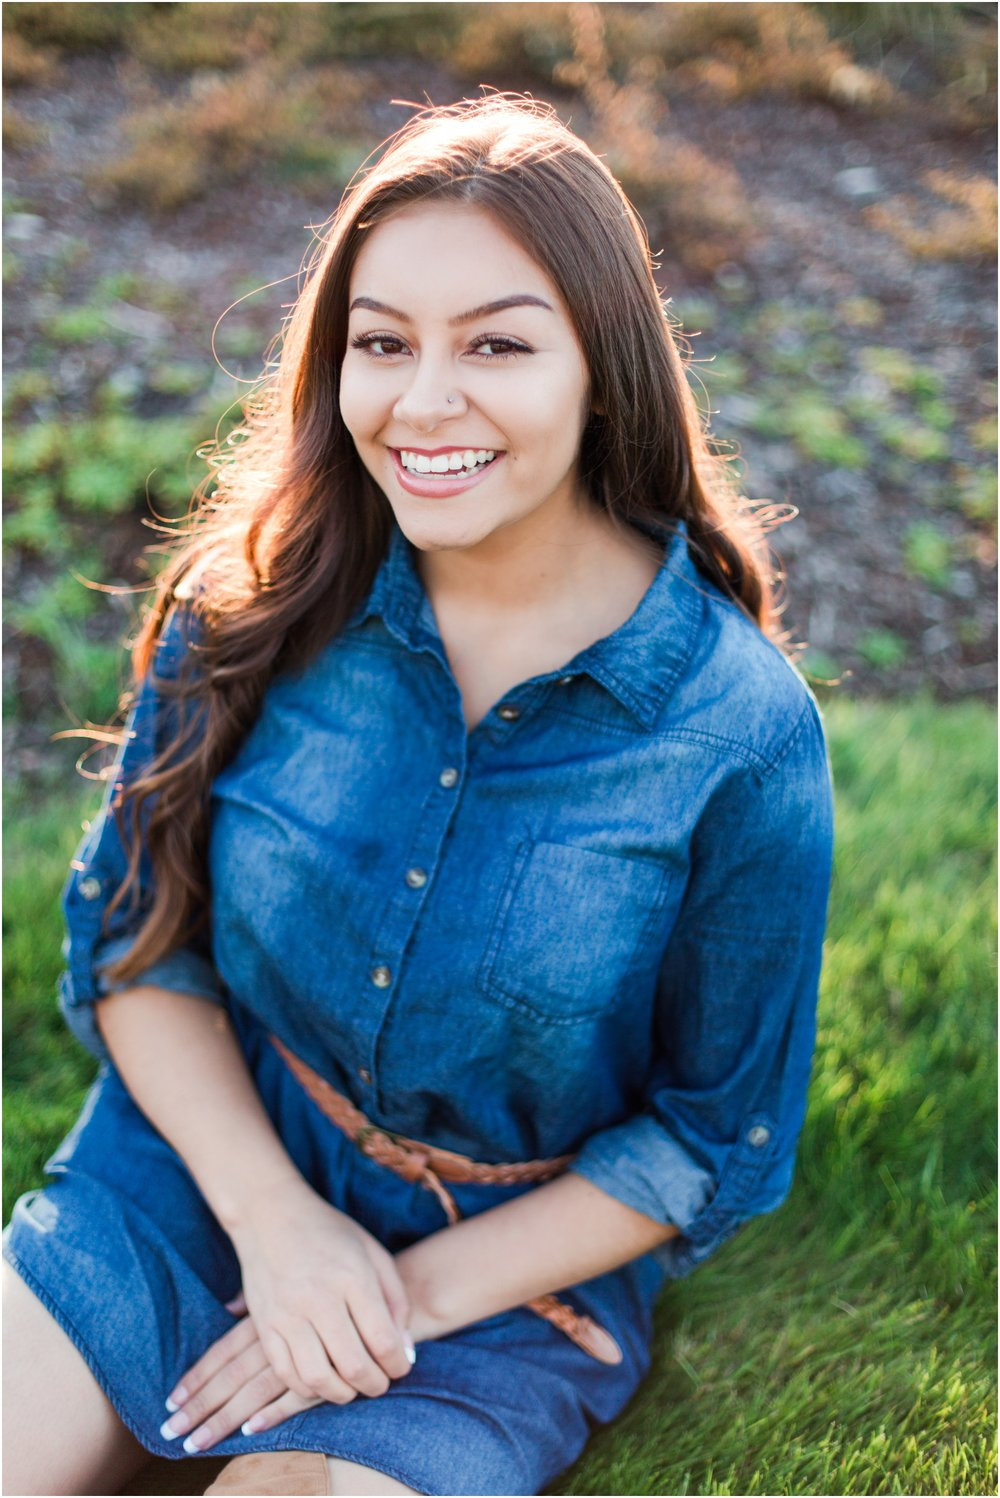 High School Senior portriats by Briana Calderon Photography based in the Greater Seattle & Tacoma, WA_0950.jpg